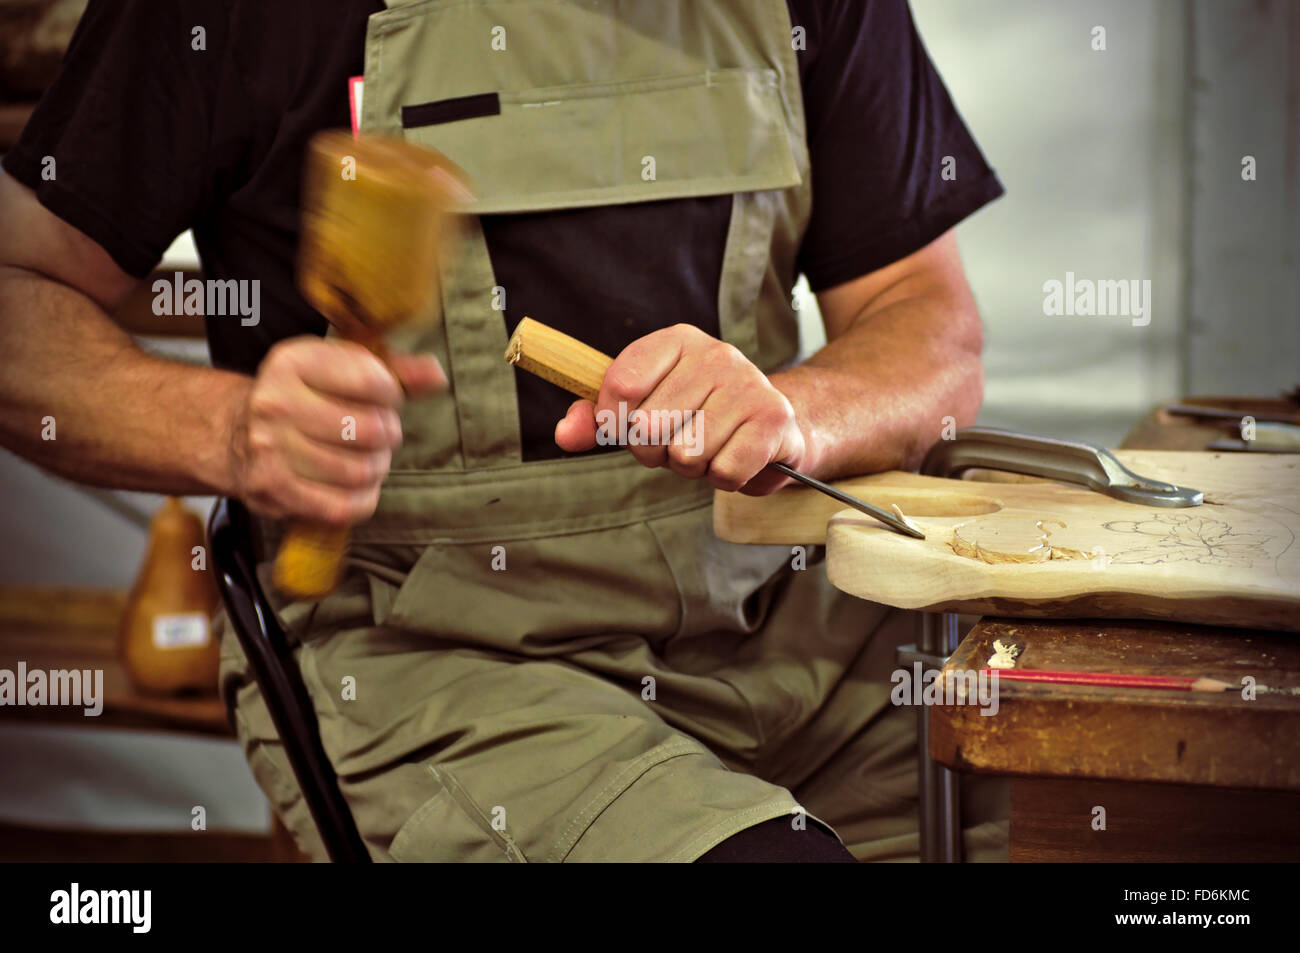 Midsection Of Craftsperson Shaping Wood - Stock Image